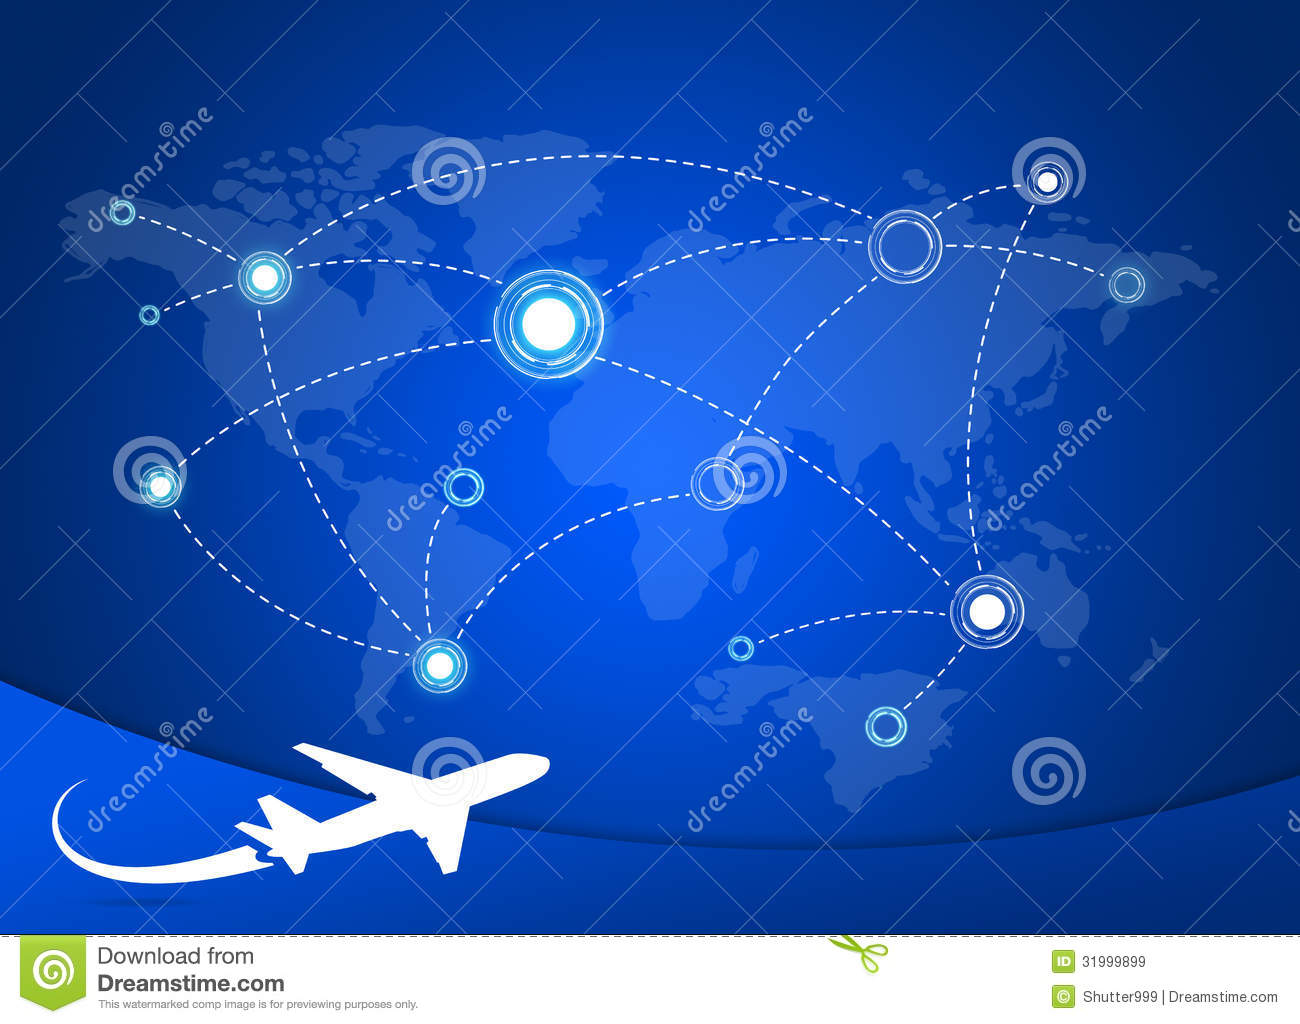 Airplane Routes On Map Royalty Free Stock Images - Image: 31999899